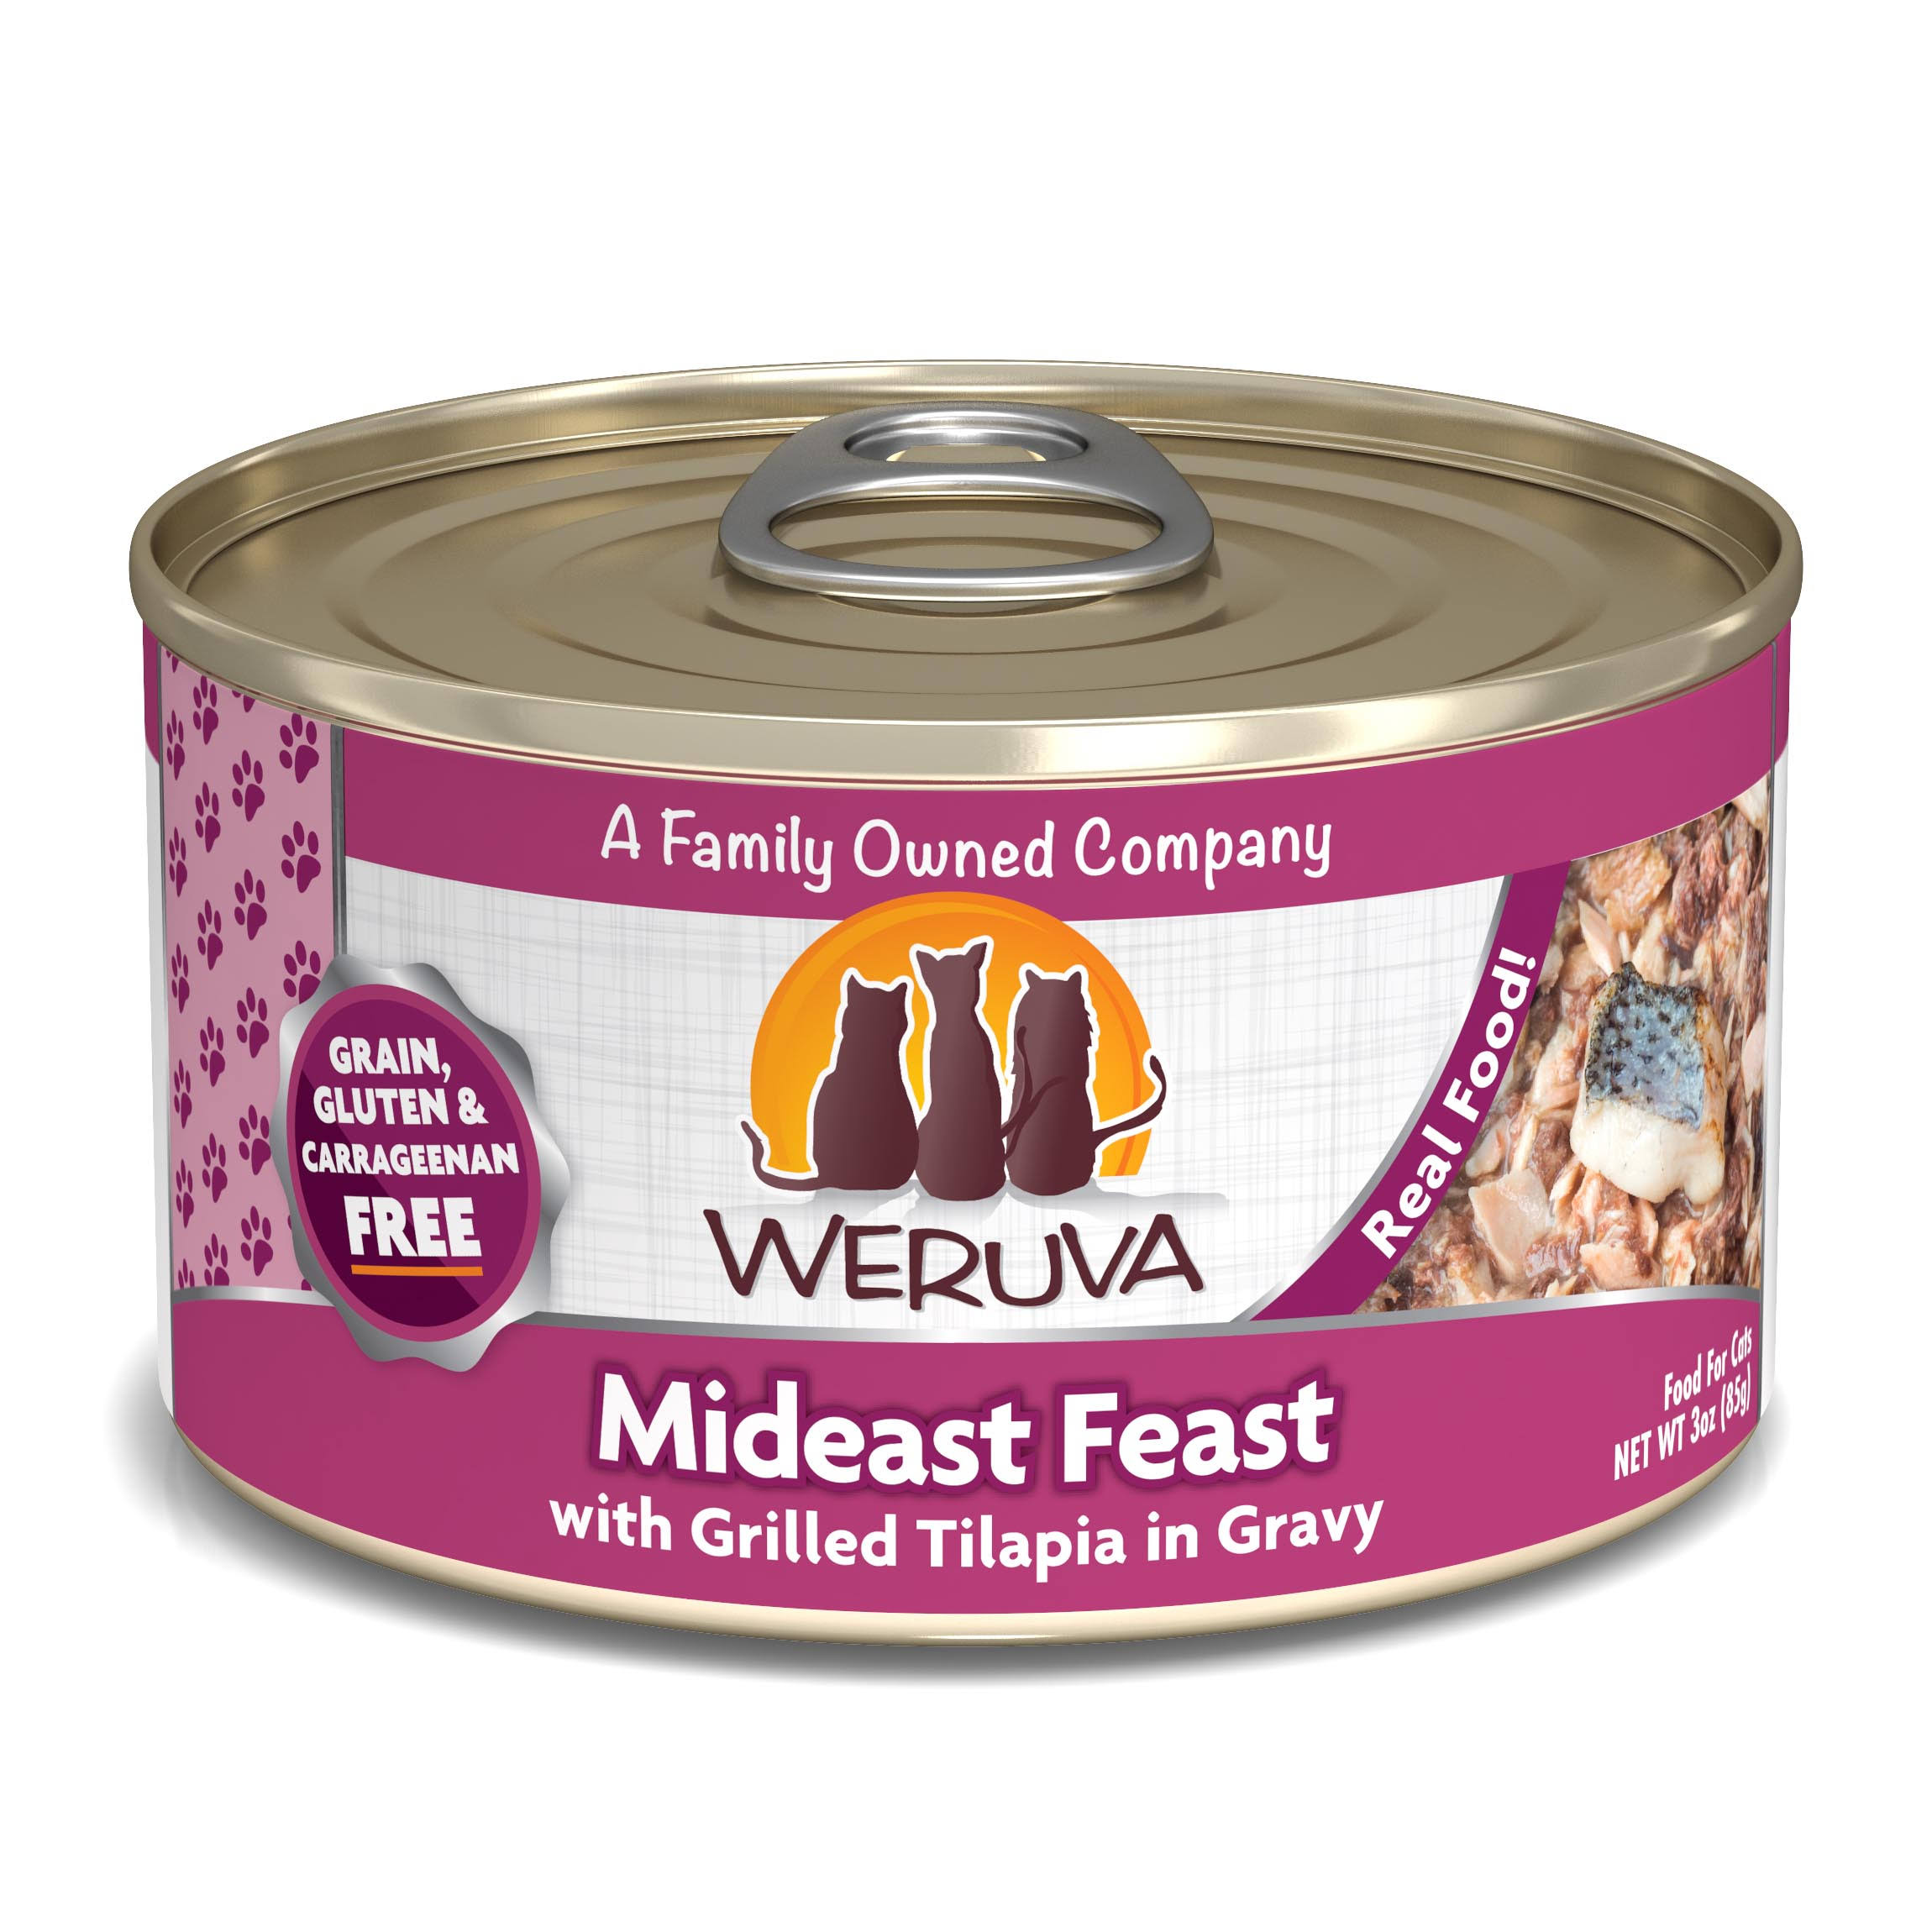 Weruva Cat Food - Mideast Feast with Grilled Tilapia, 3oz